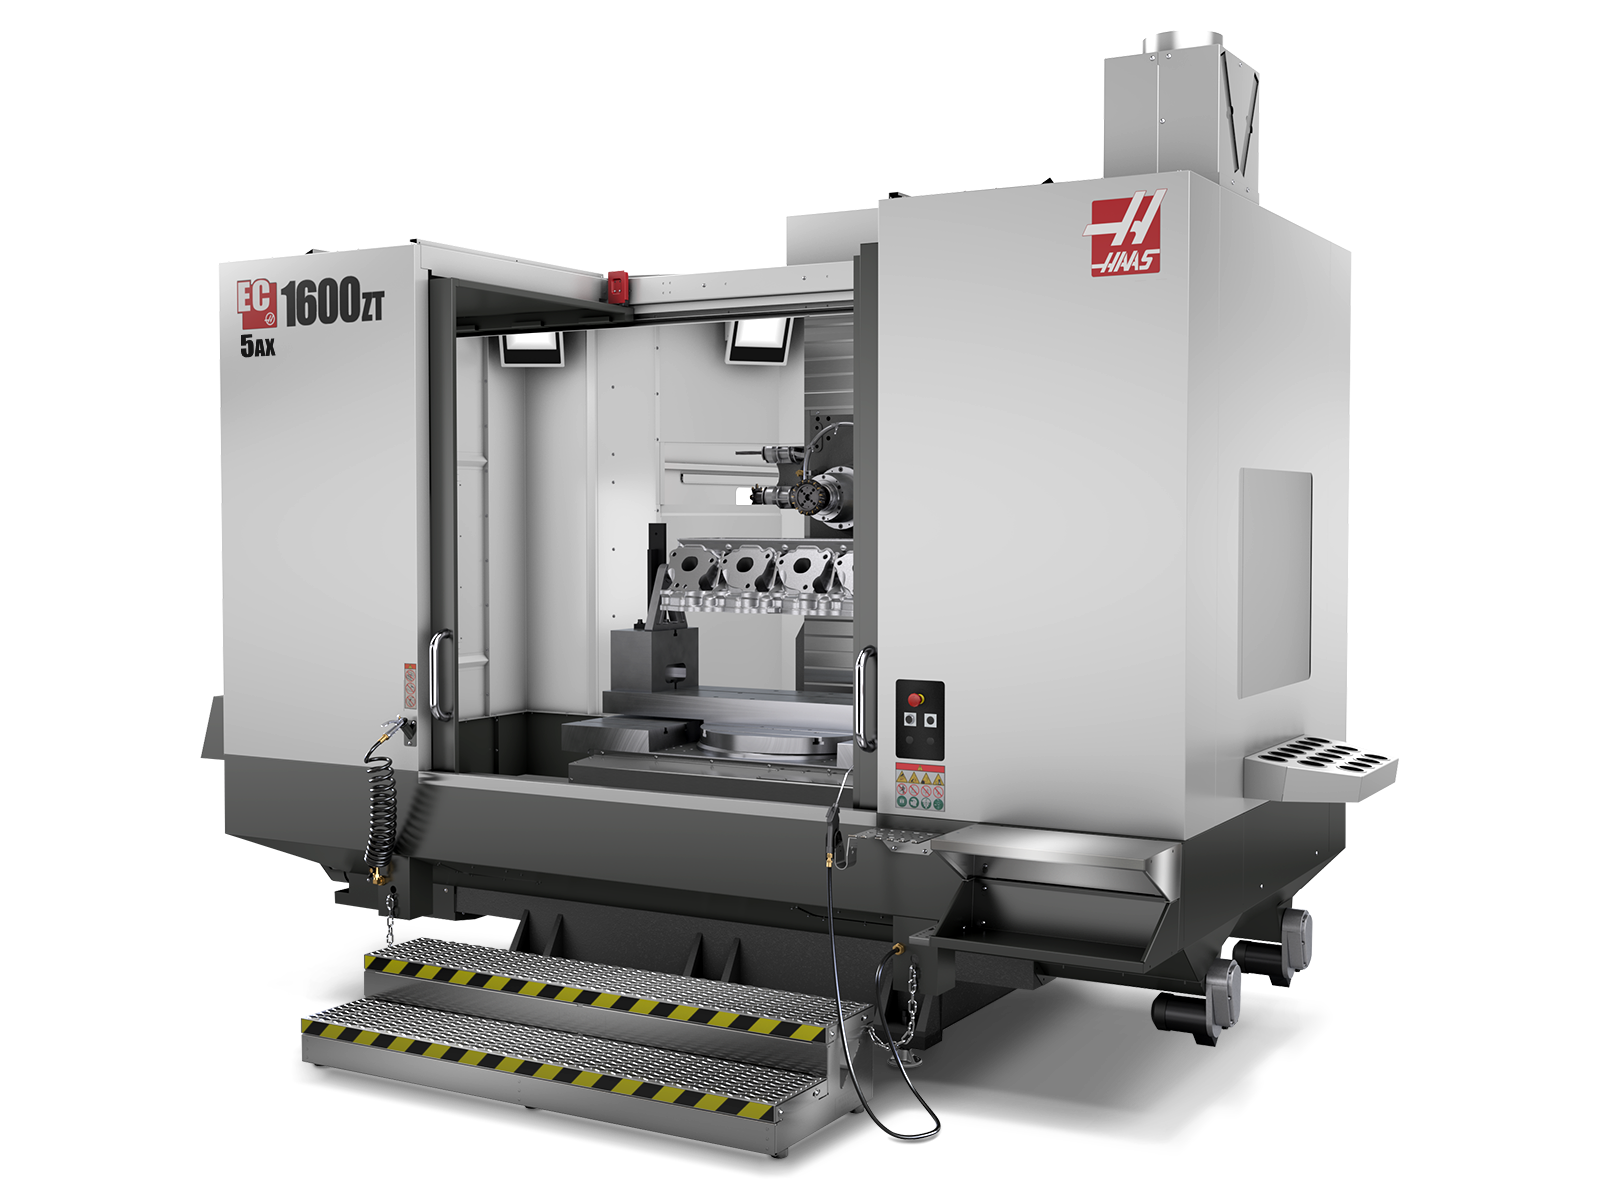 Horizontal Milling Machine >> Horizontal Mills